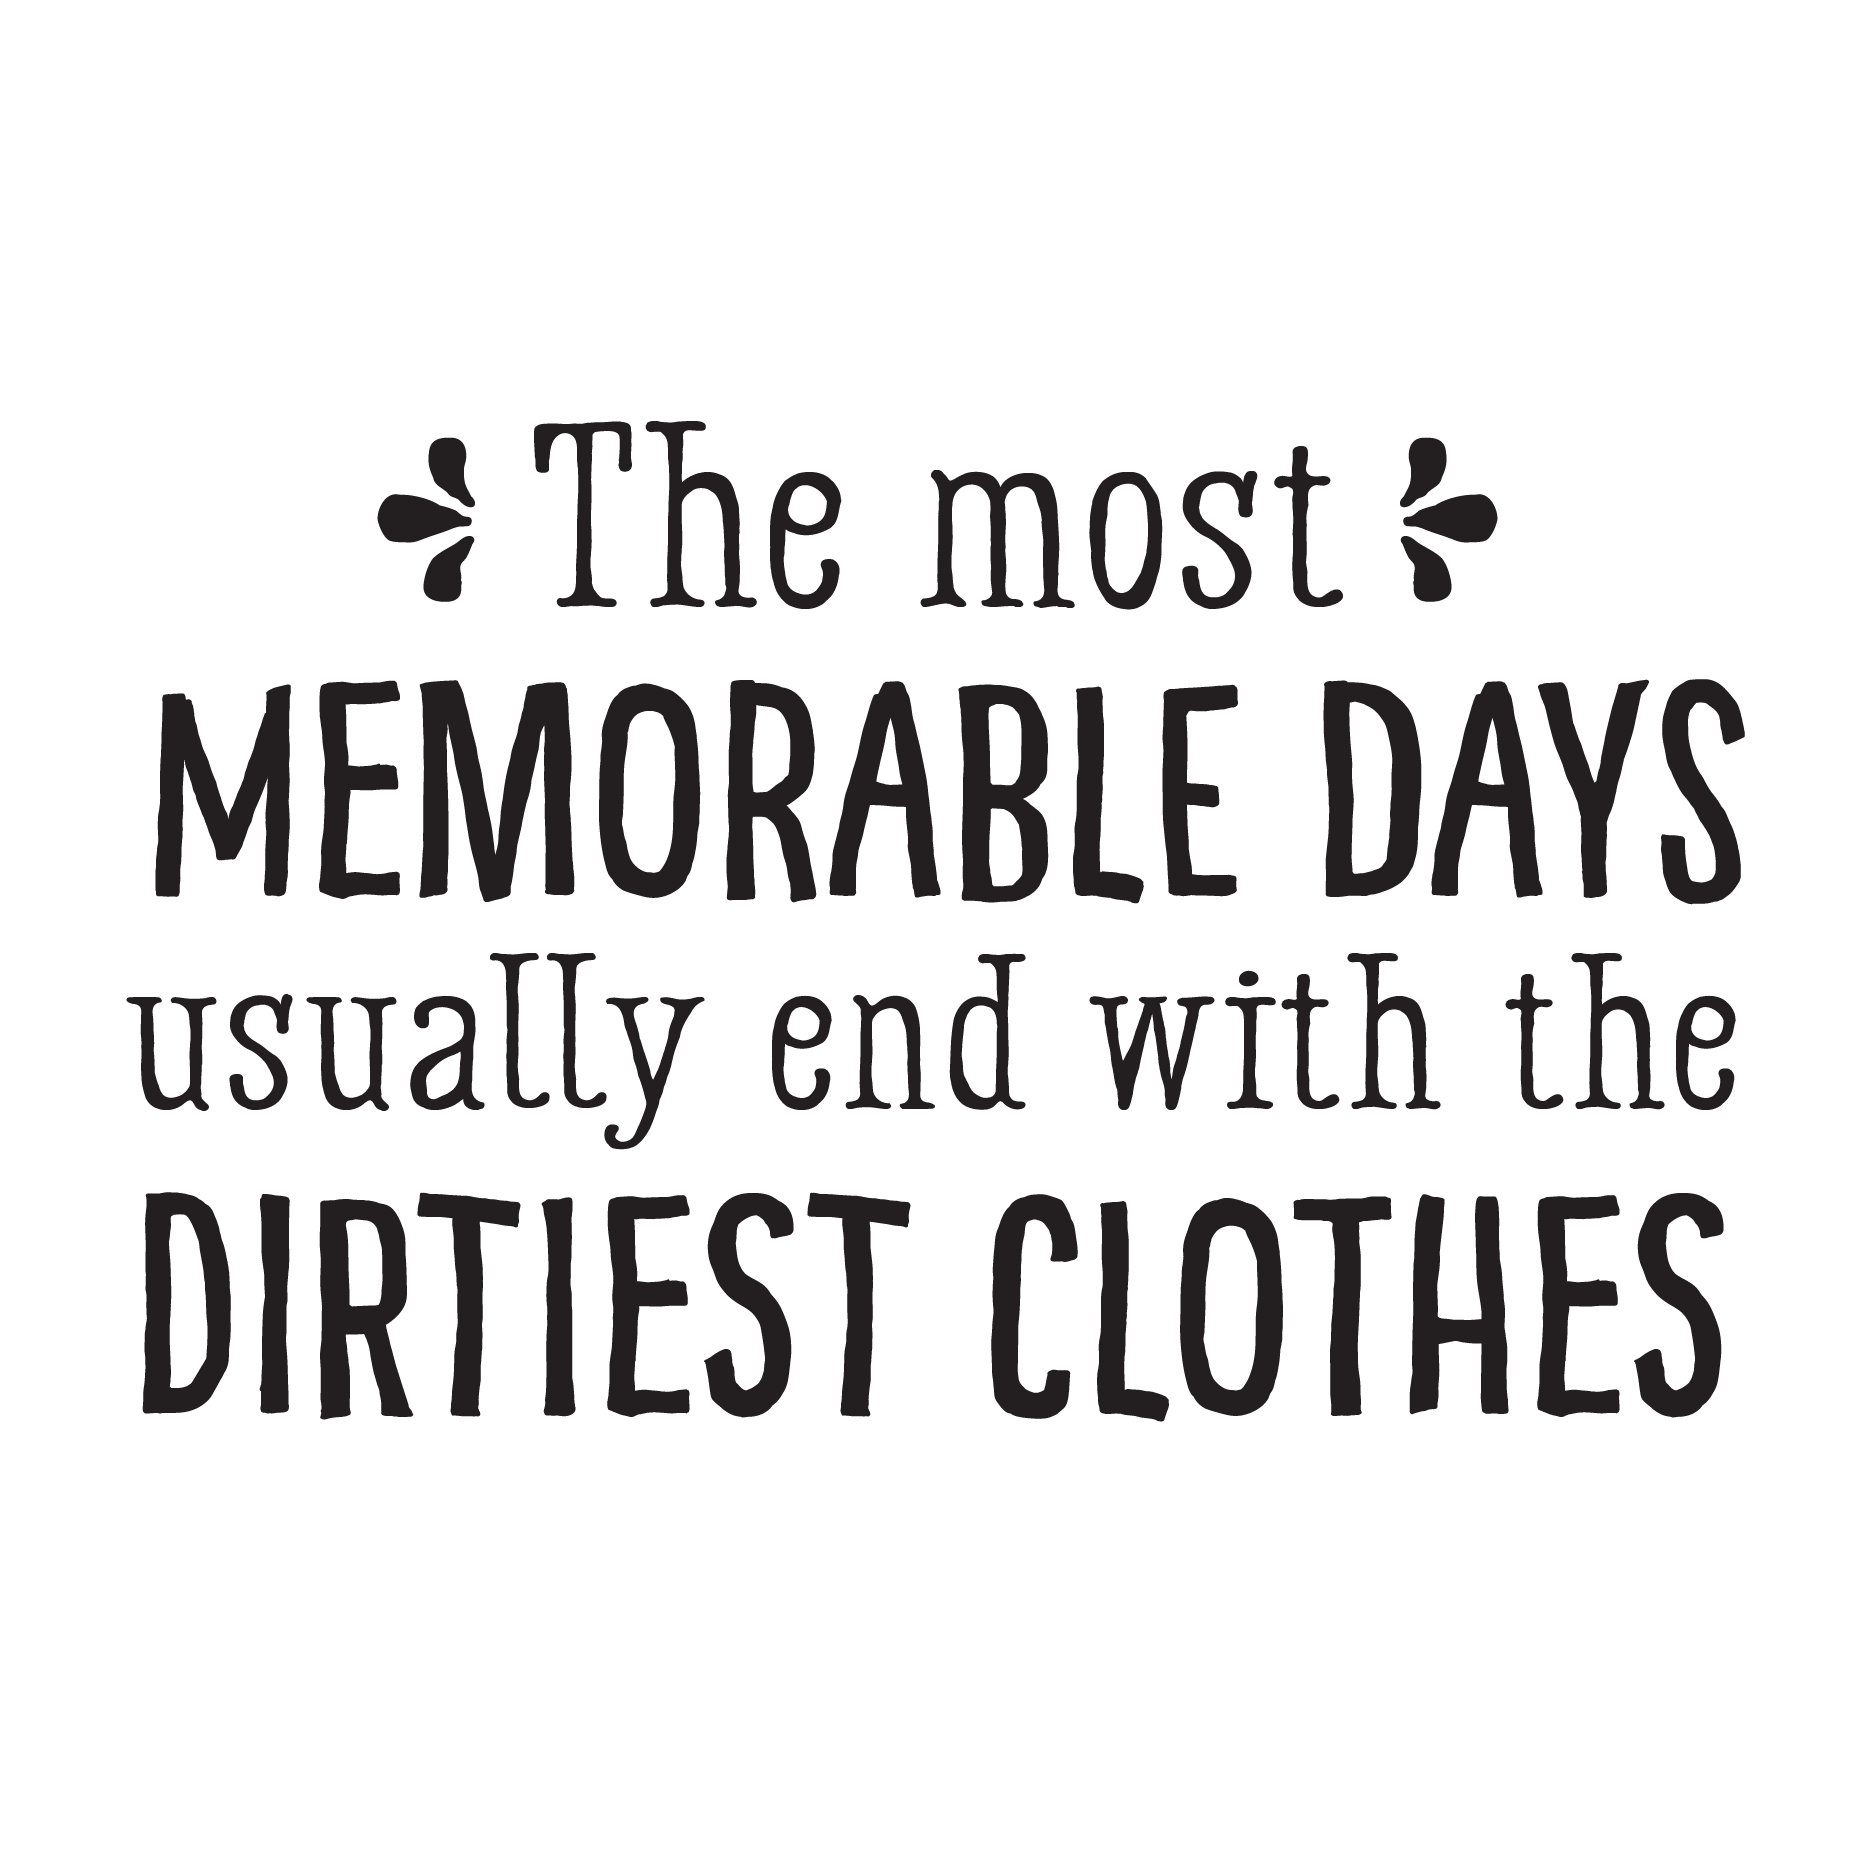 Clothes Quotes Whimsical Memorable Days Wall Quotes Decal Wallquotes